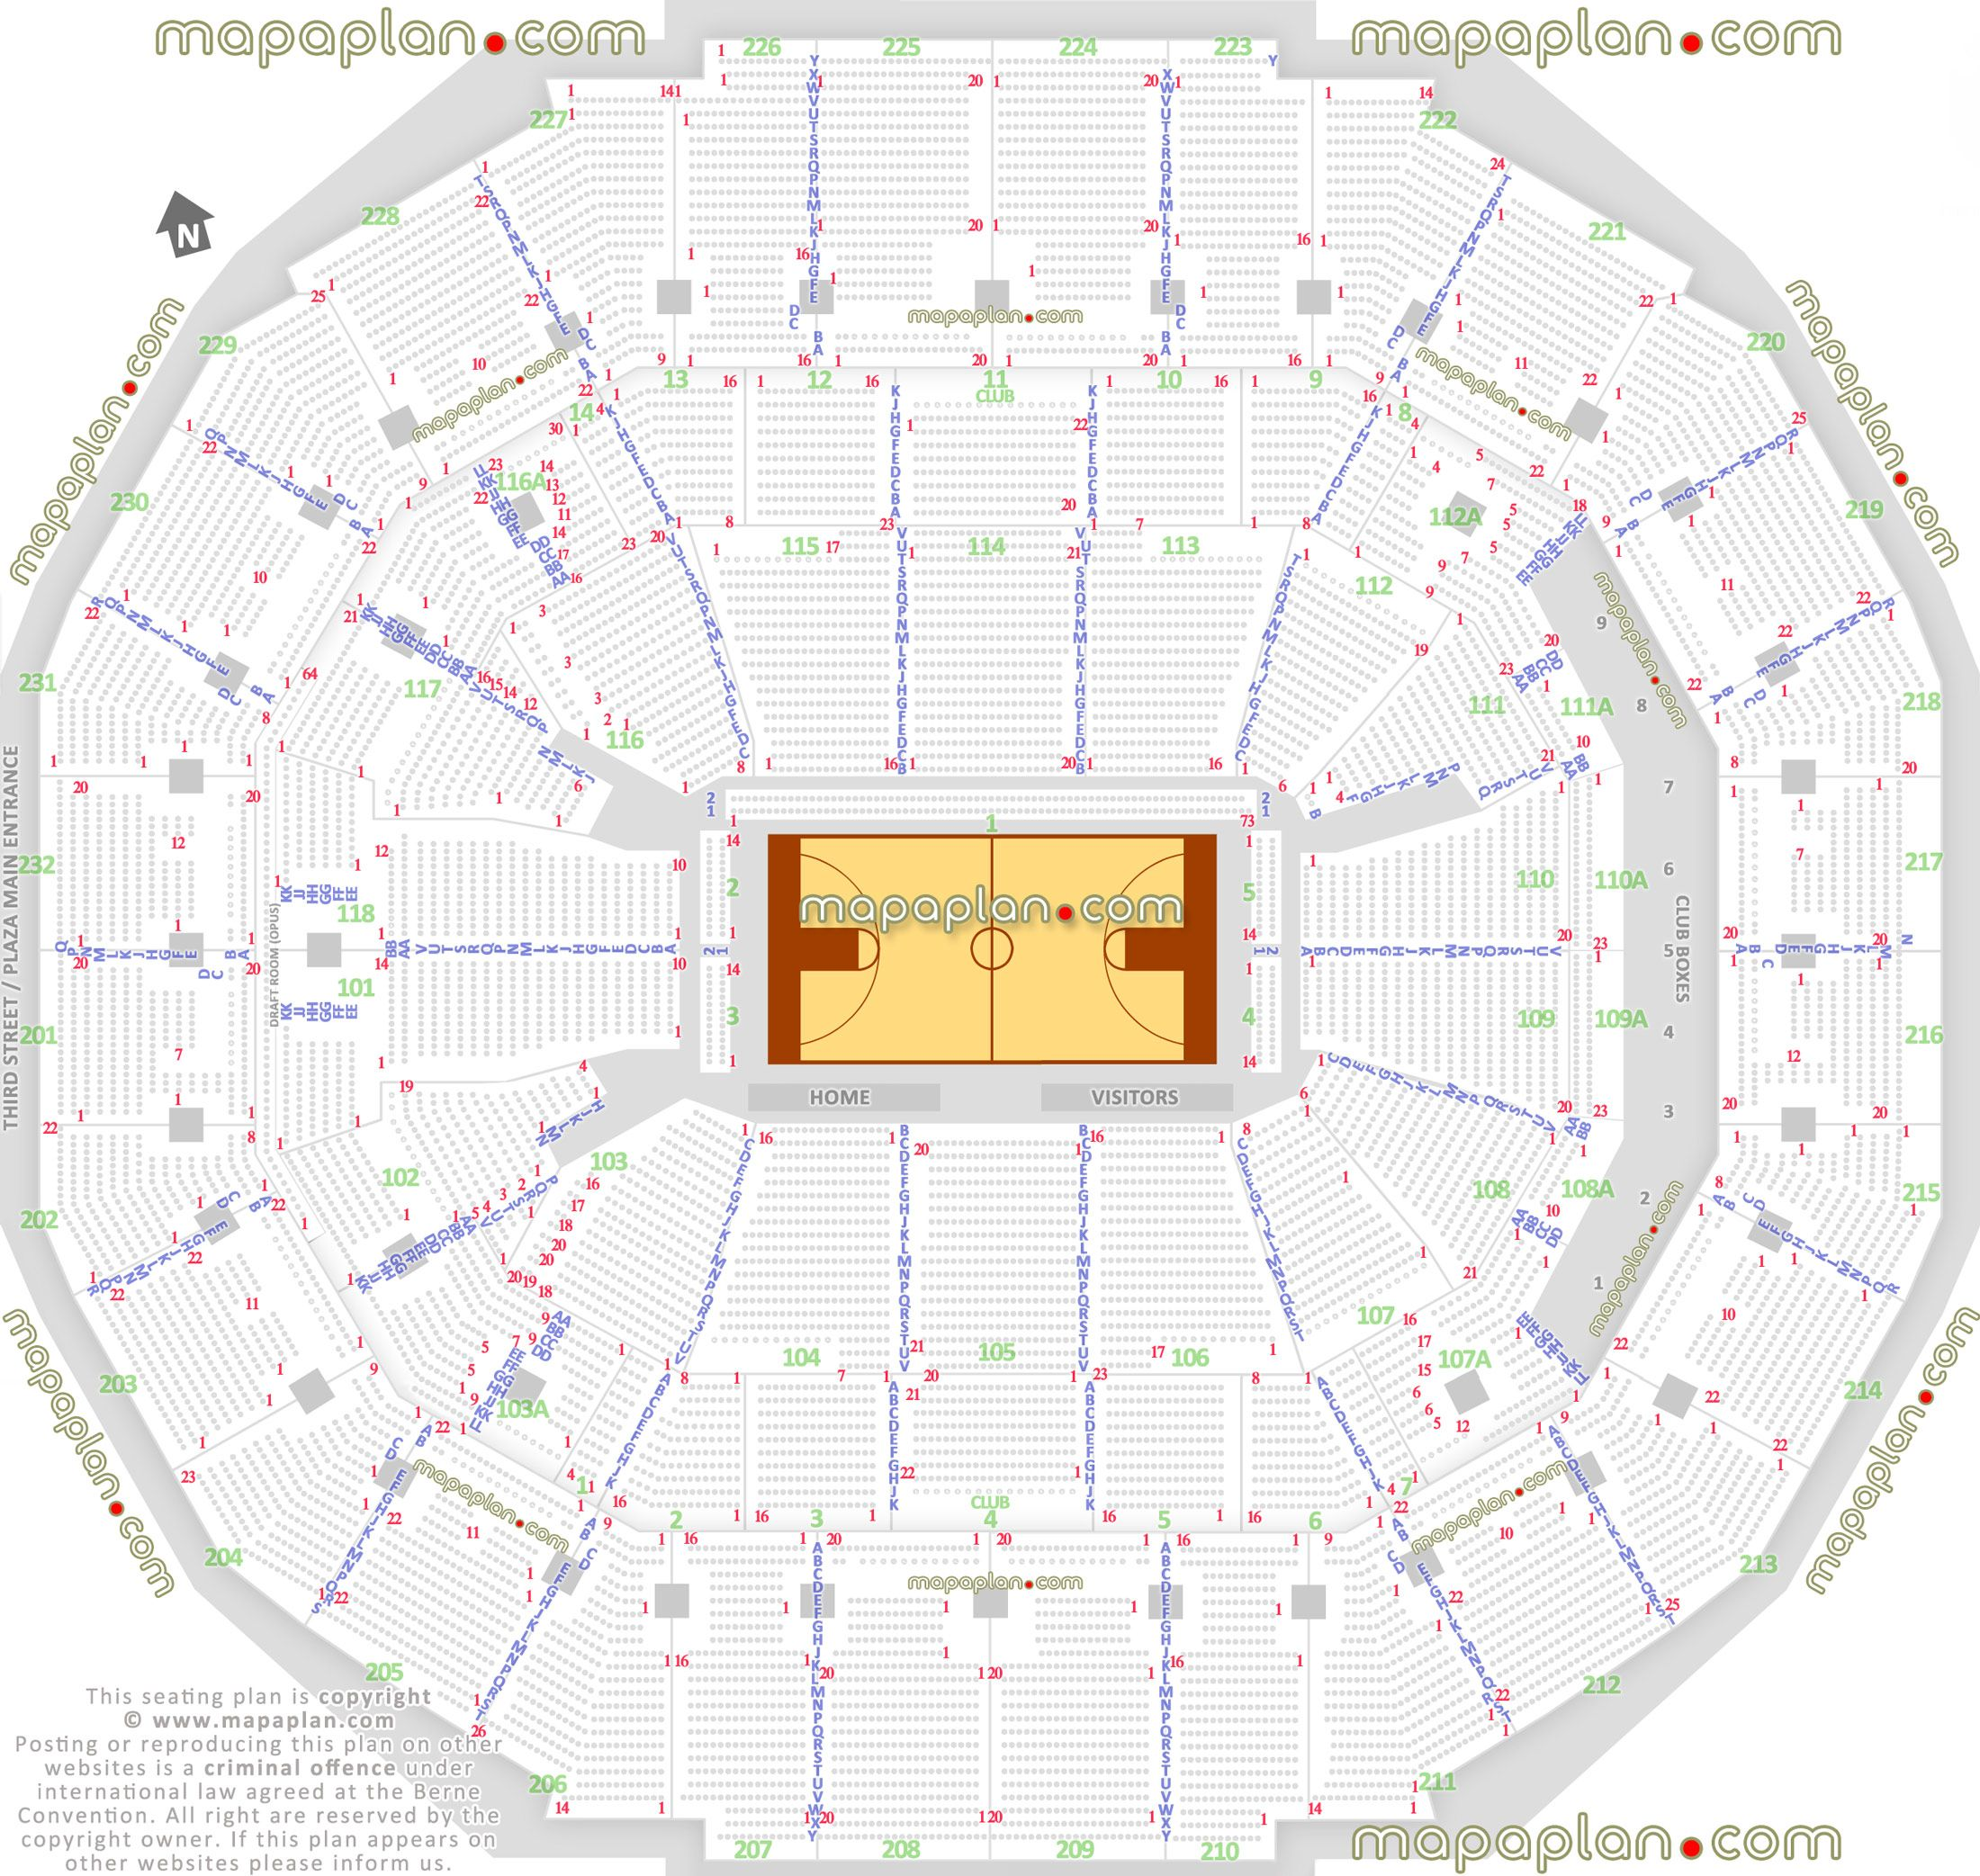 Fedexforum Basketball Plan For Memphis Grizzlies Nba Tigers Ncaa Games Arena Stadium Diagram Individual F Seating Charts Memphis Grizzlies How To Plan